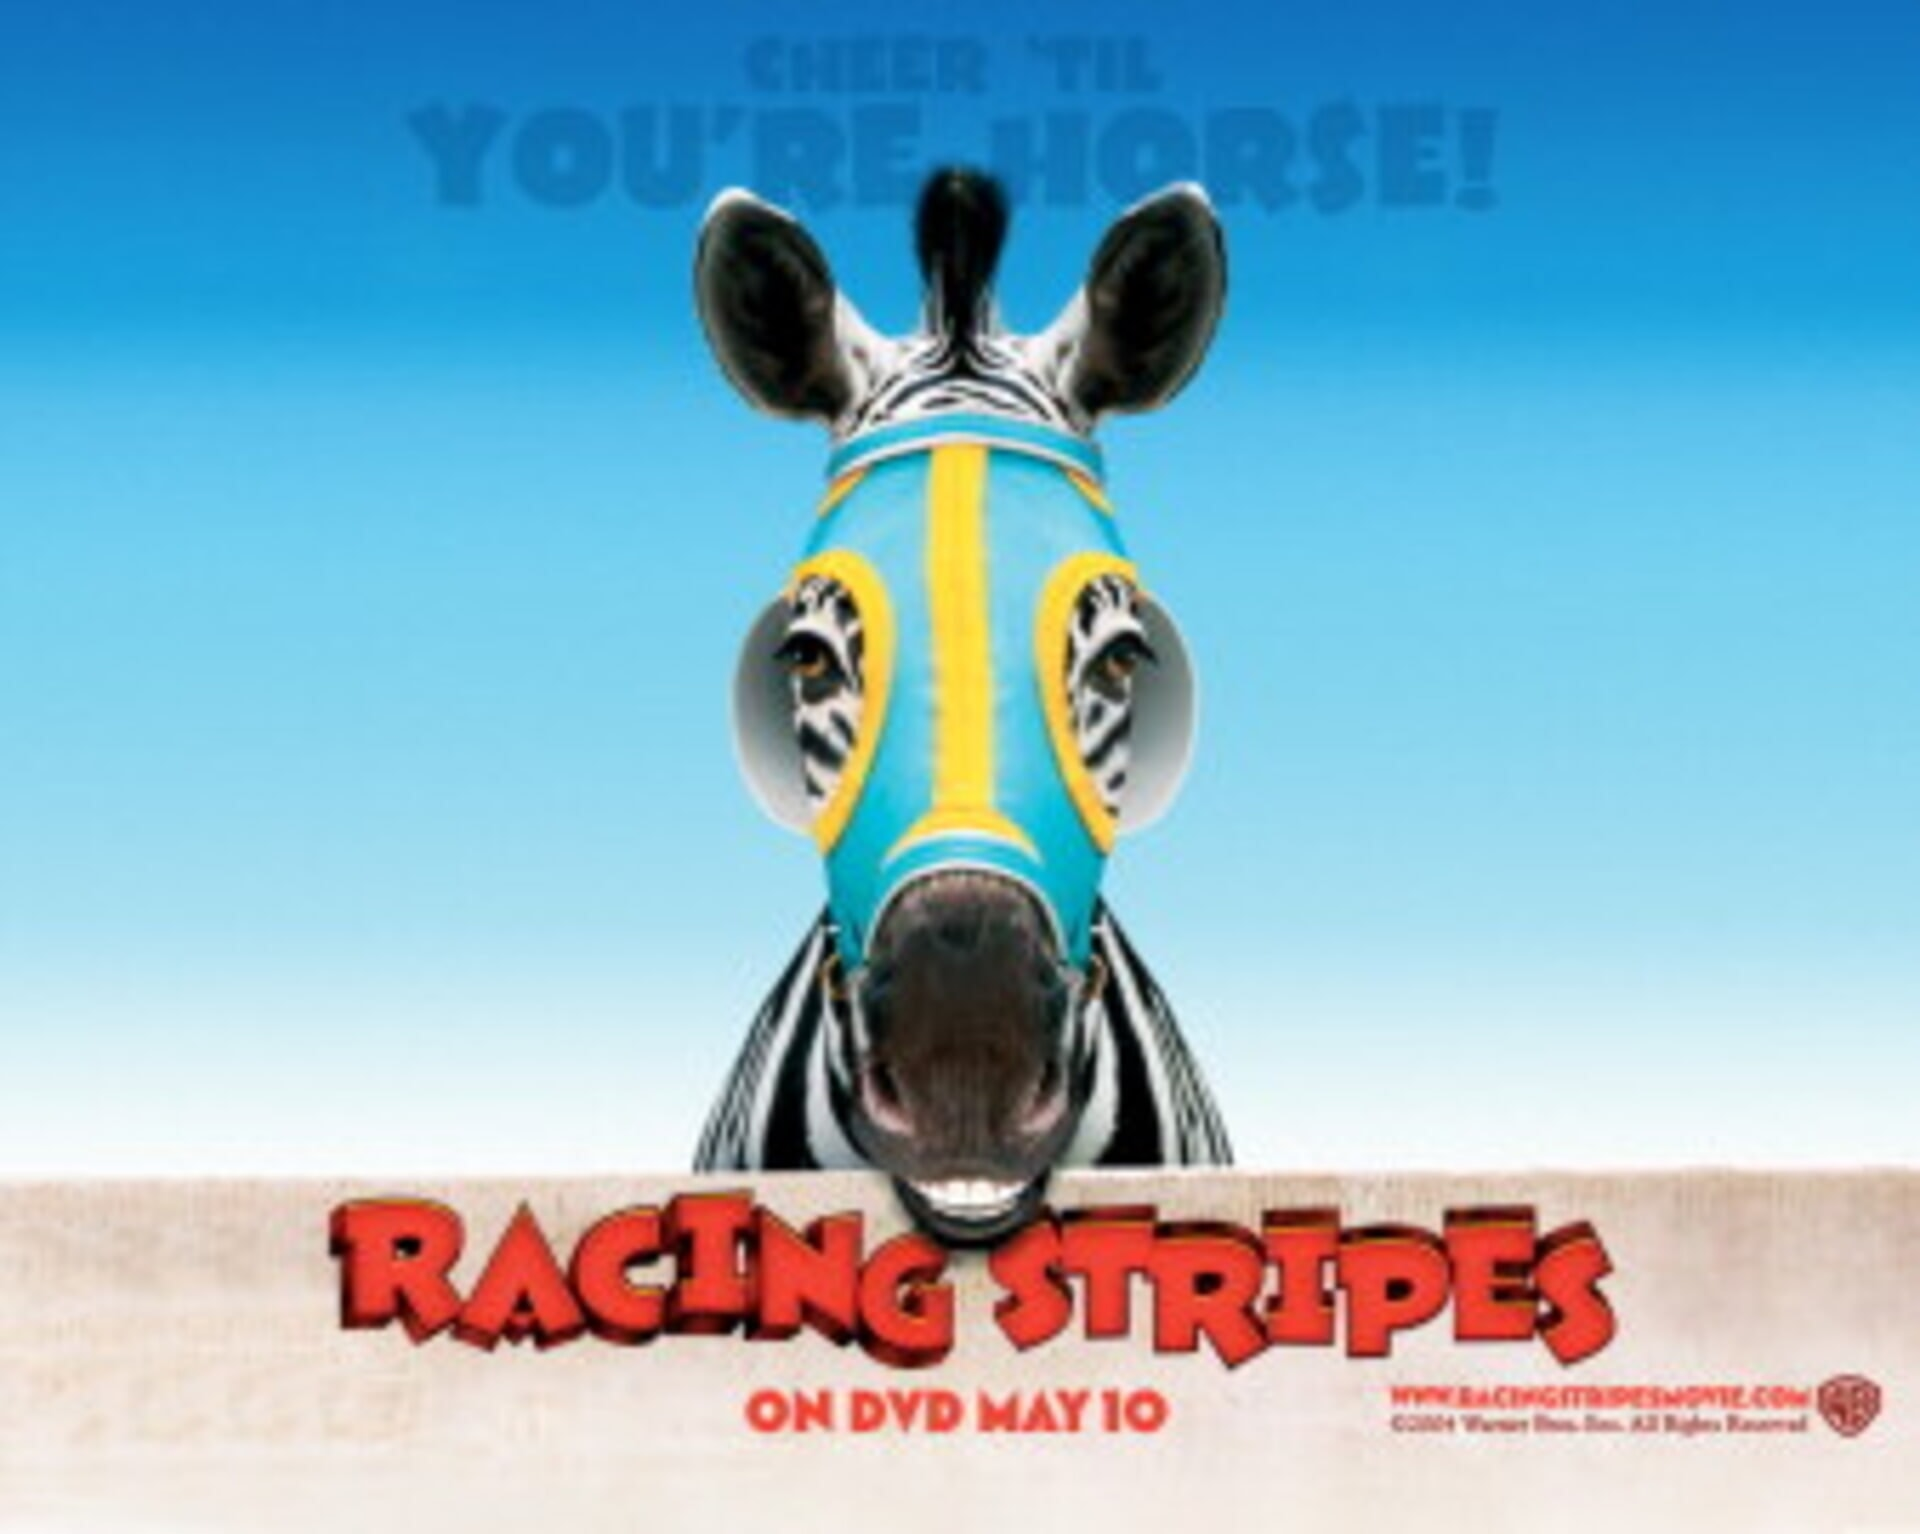 Racing Stripes - Image 12